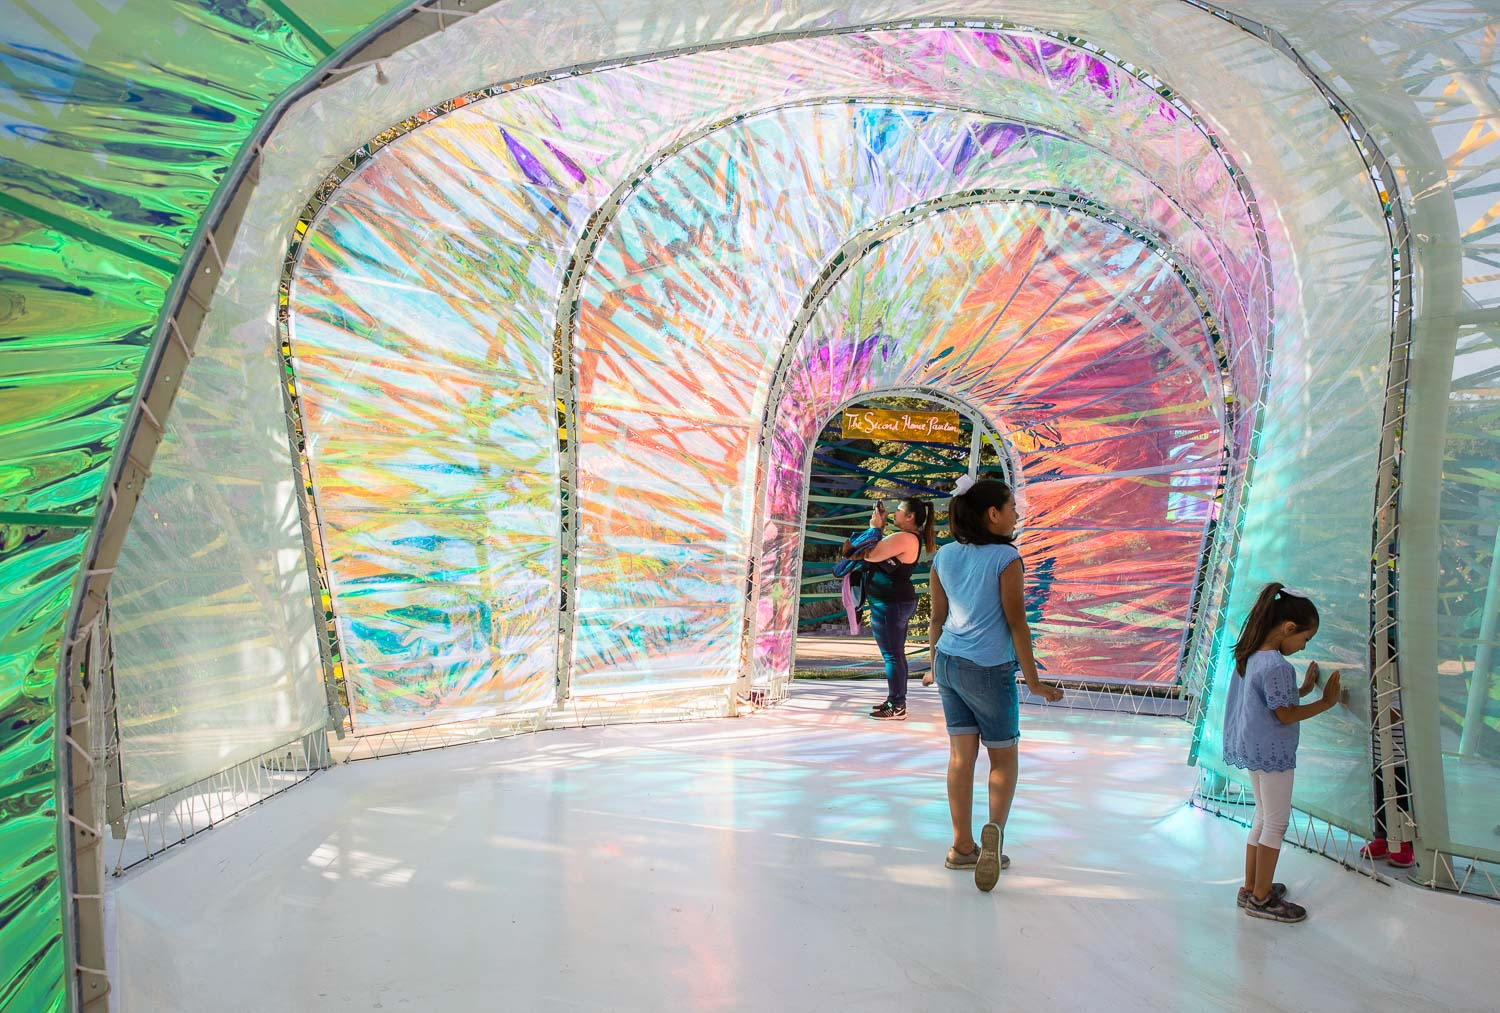 Interiors of the SelgasCano's Serpentine Pavilion in Los Angeles